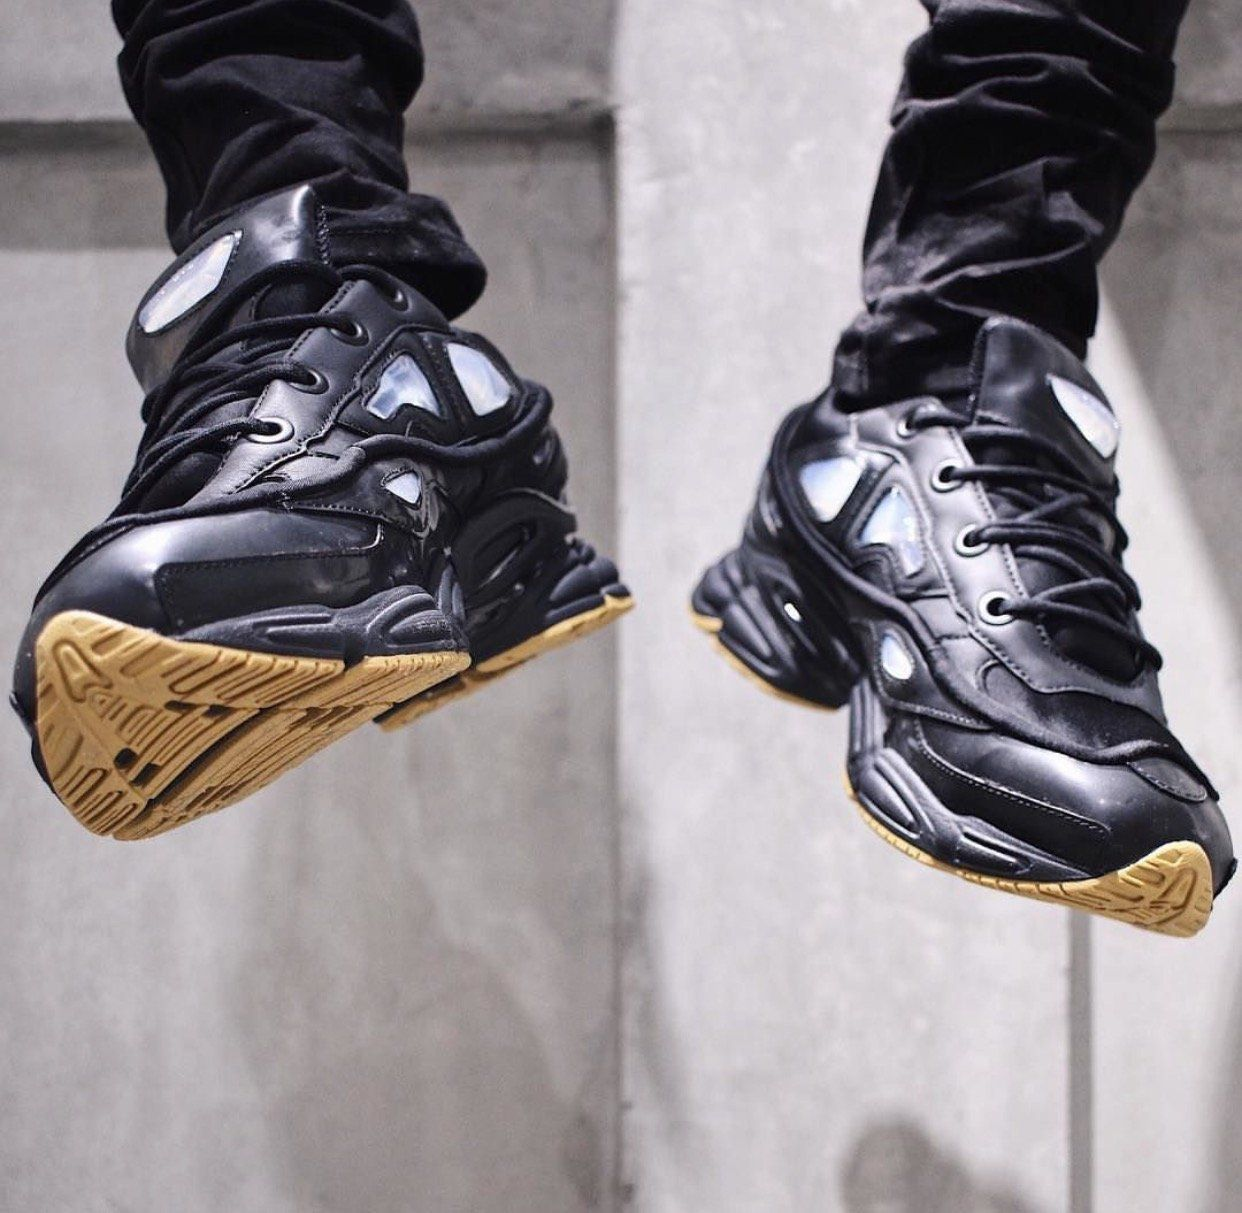 meet 63194 d511e Raf Simons Black adidas Originals Edition Ozweego Bunny Sneakers modern,  performance, sneakers